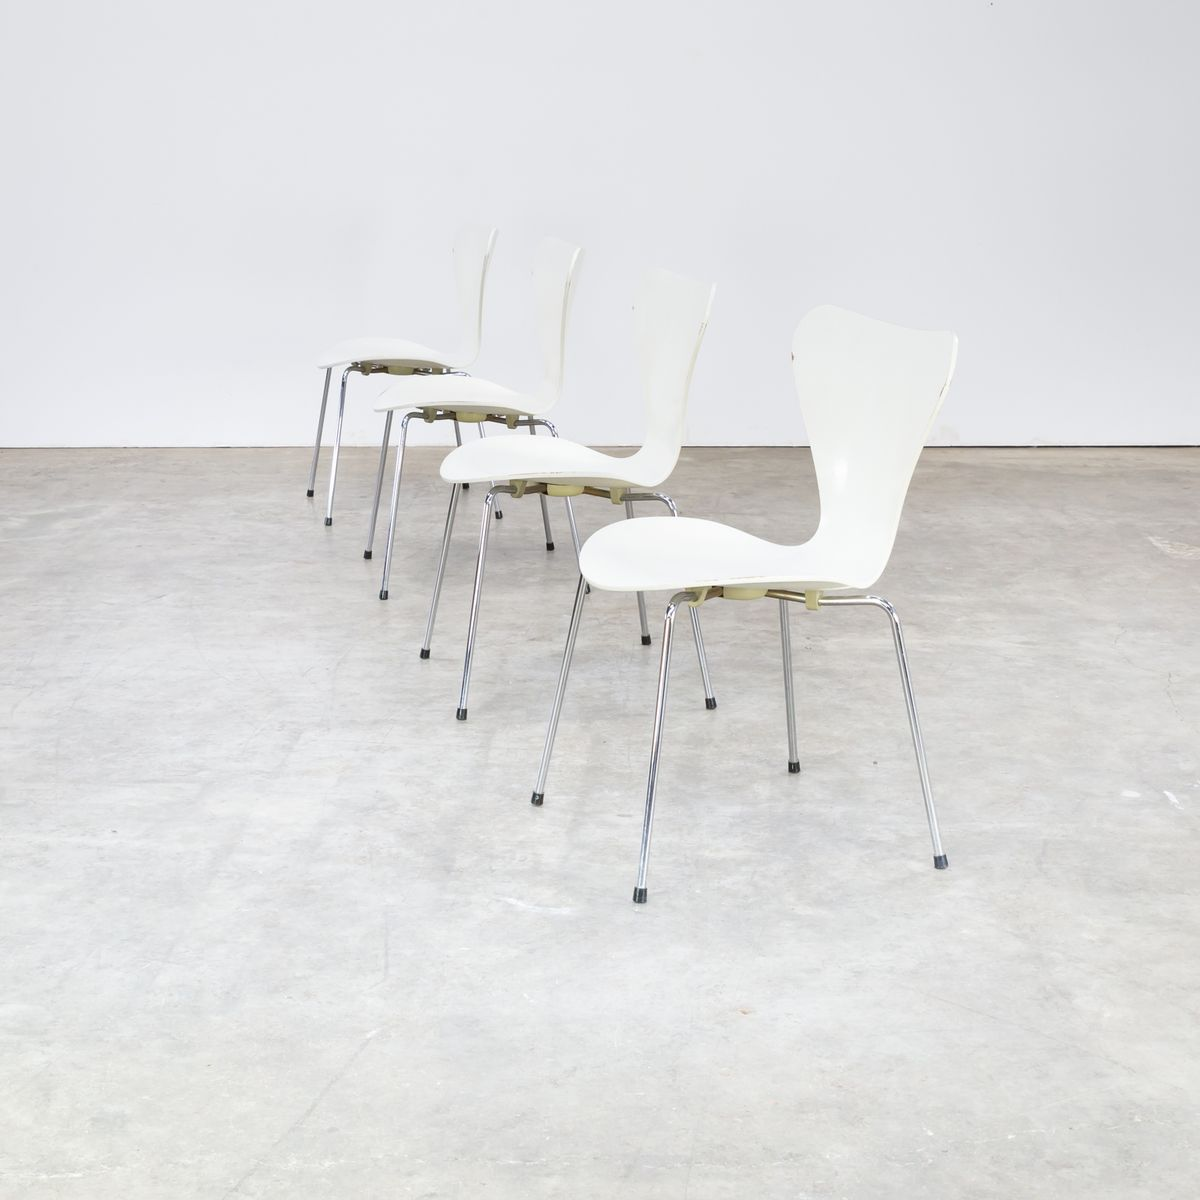 Mid Century Butterfly Chair By Arne Jacobsen For Fritz Hanzen, Set Of 4 For  Sale At Pamono